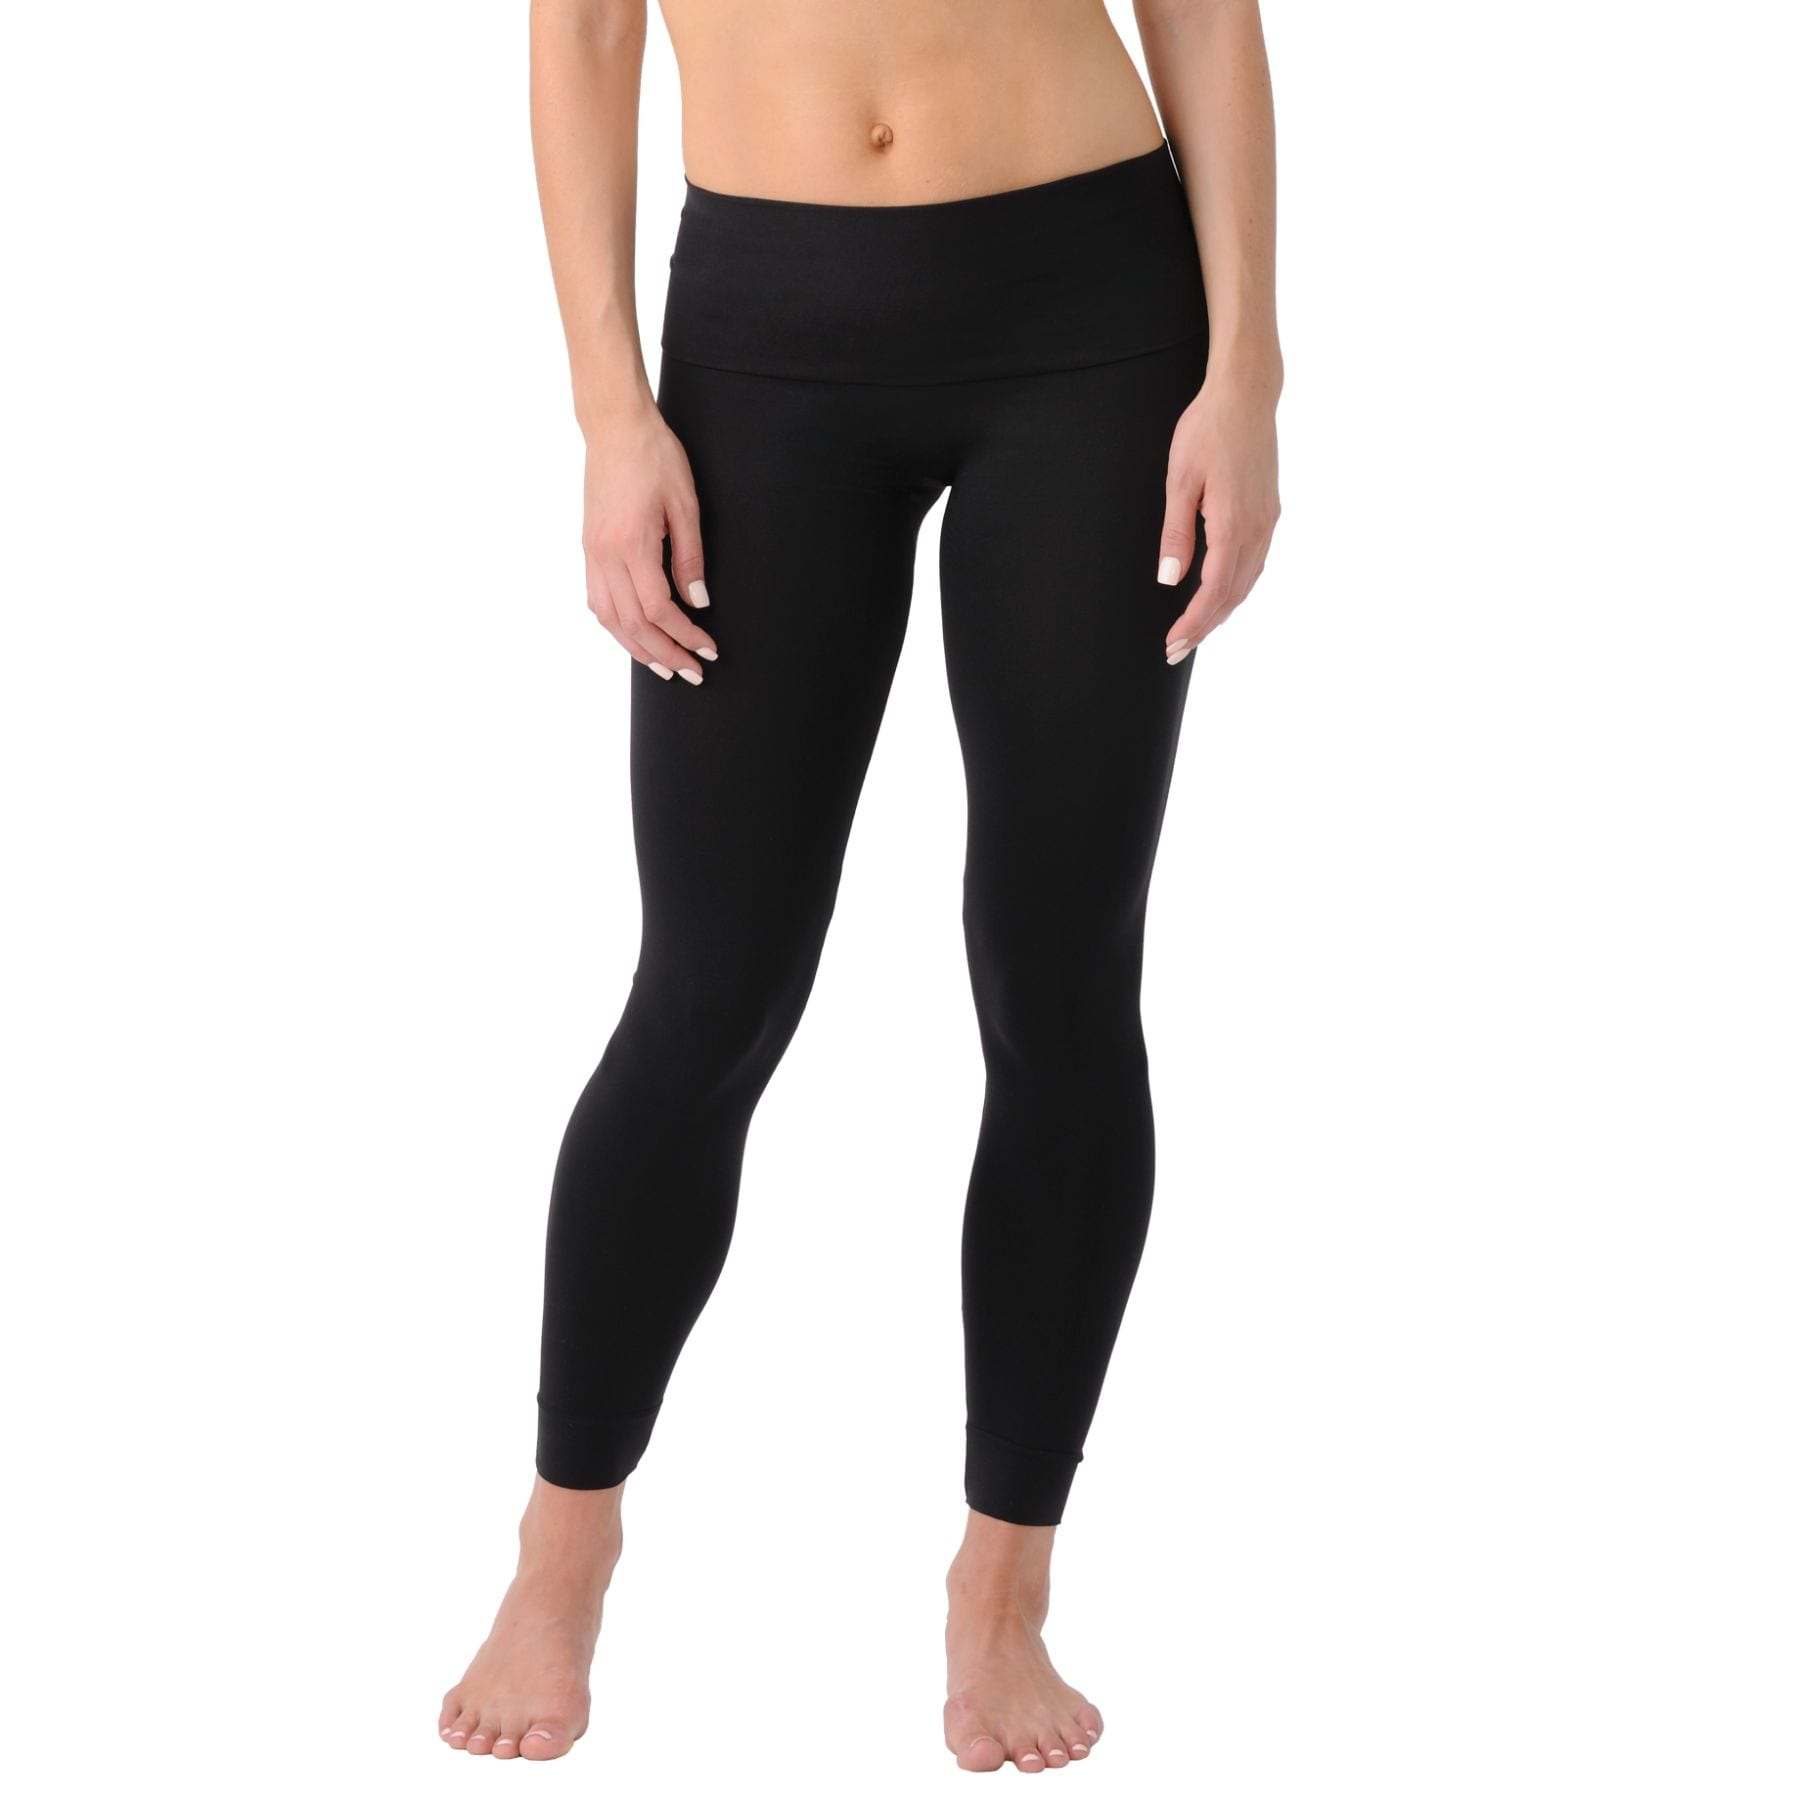 Belly Bandit Belly Bandit B.D.A Leggings - Black